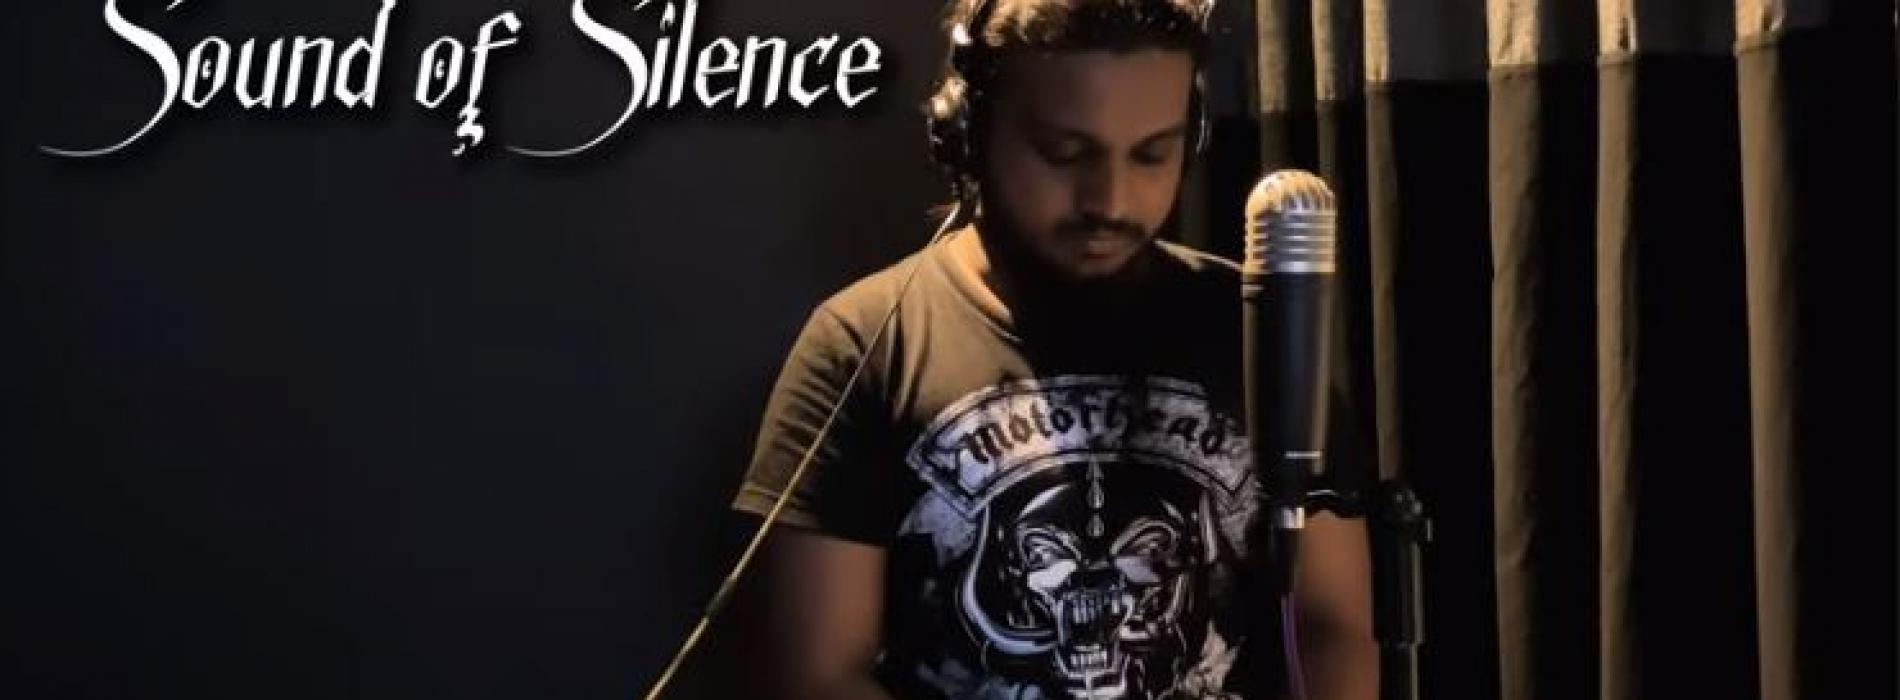 New Music : Sound of Silence – Vocal Cover by Lakshika Seneviratne